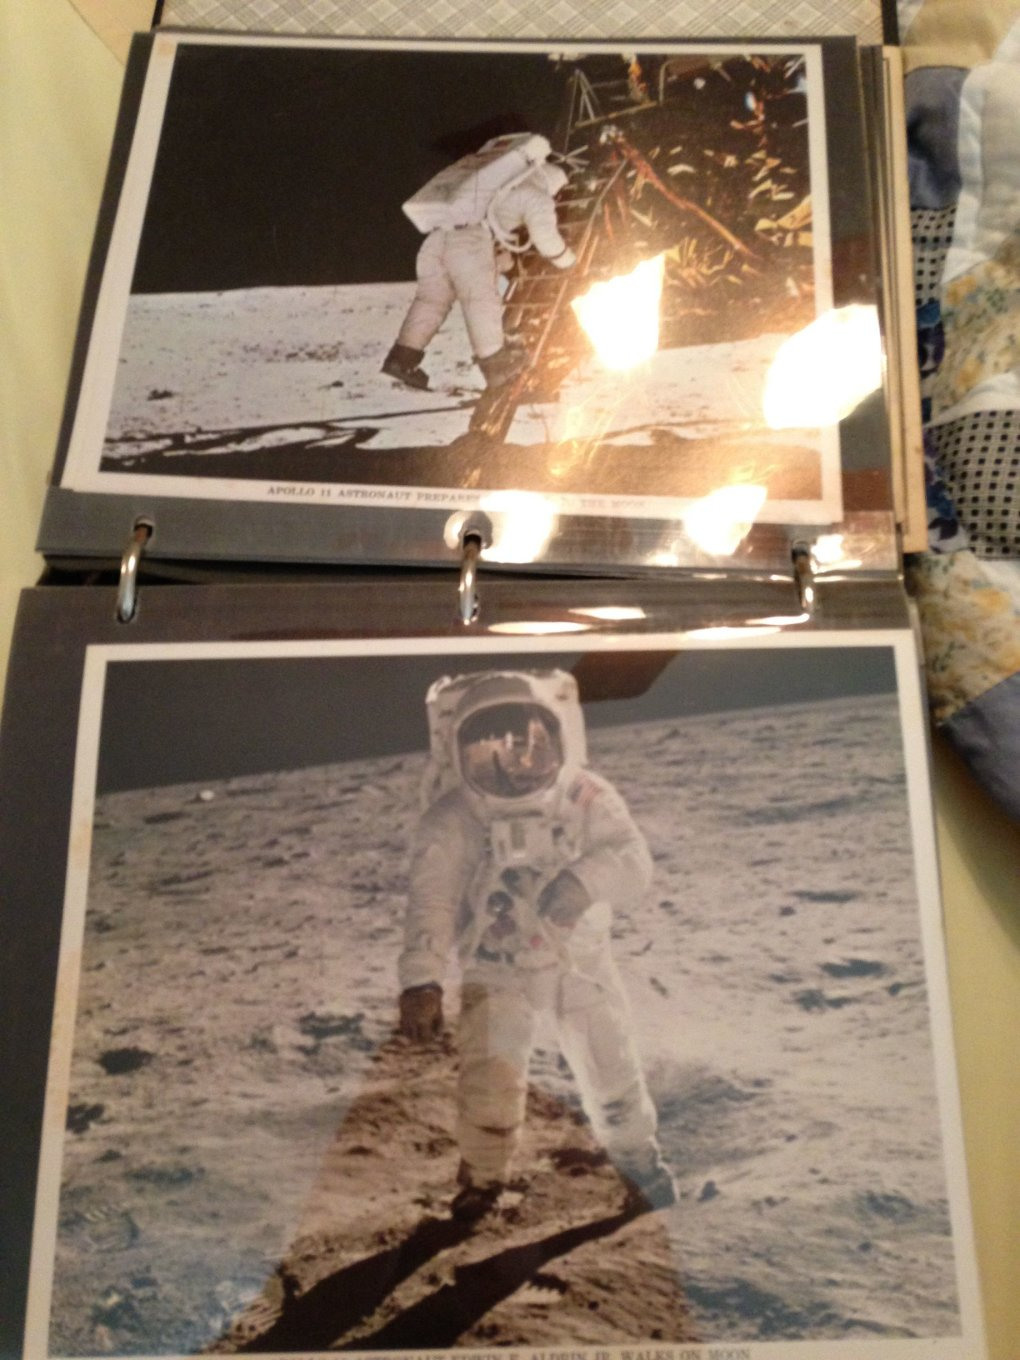 07 oyjasgn - guy went through his grandfathers stuff and stumbled upon a binder with all of his nasa stuff